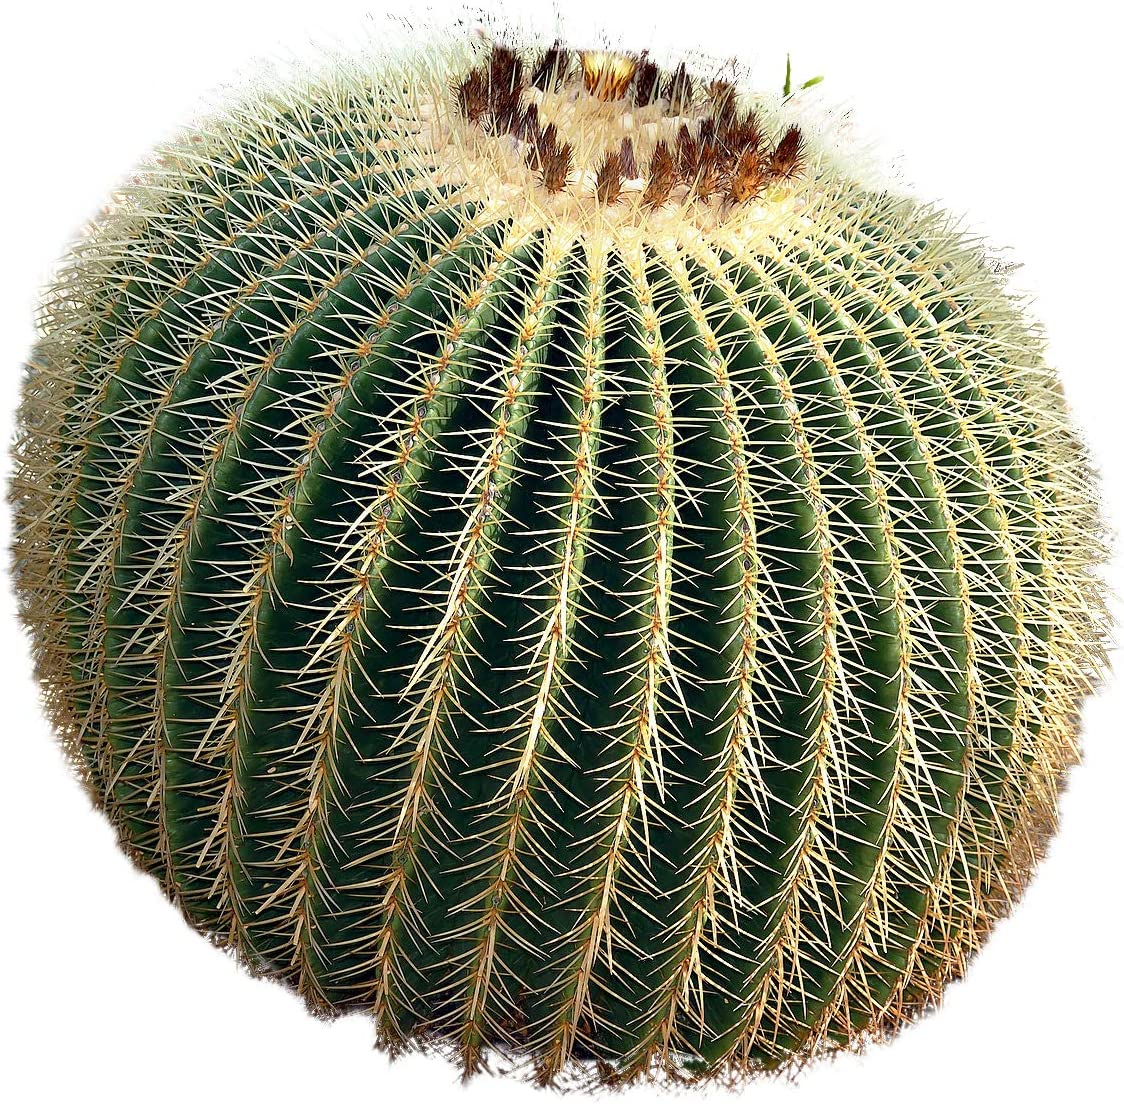 50 HIGH QUALITY SEEDS GOLDEN BARREL CACTUS ECHINOCACTUS GRUSONII